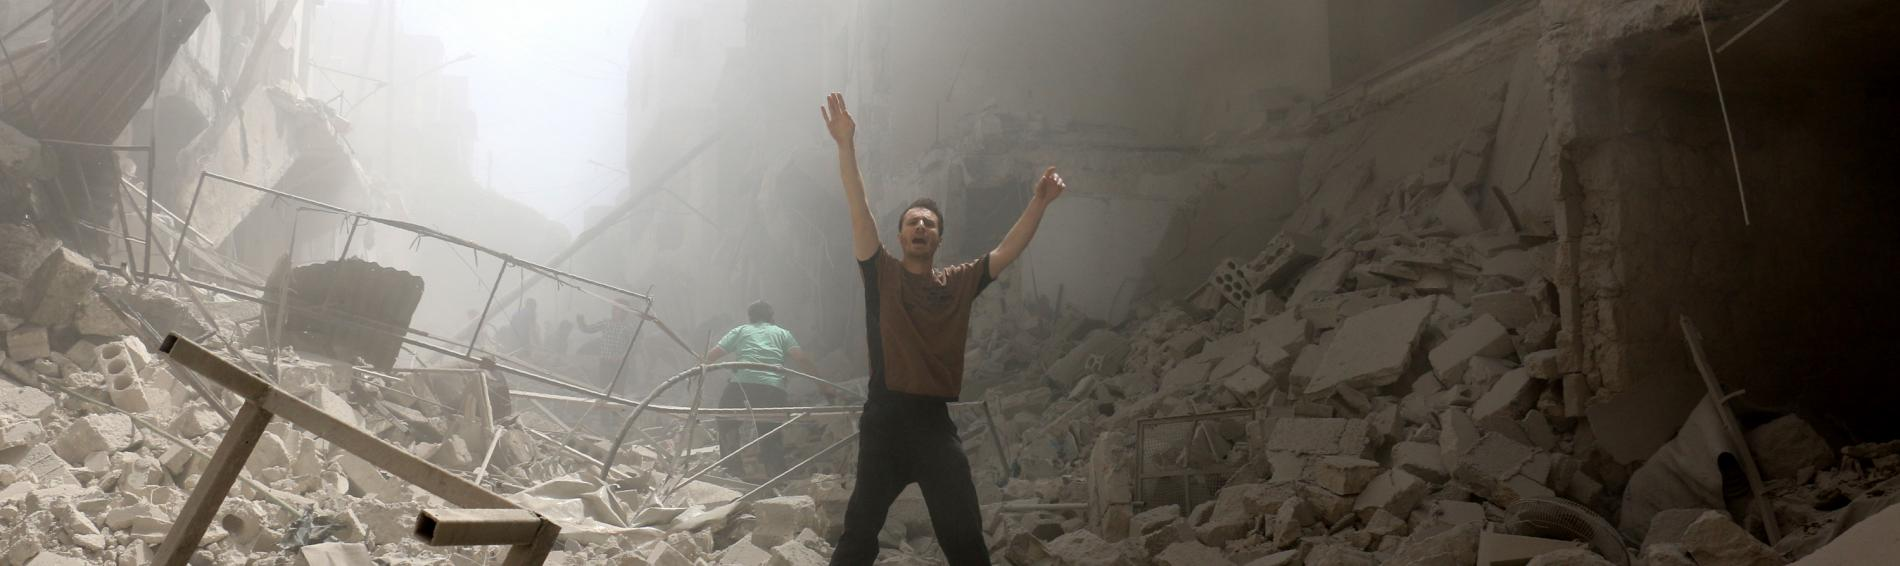 syrie-urgence-AFP-August Press Release